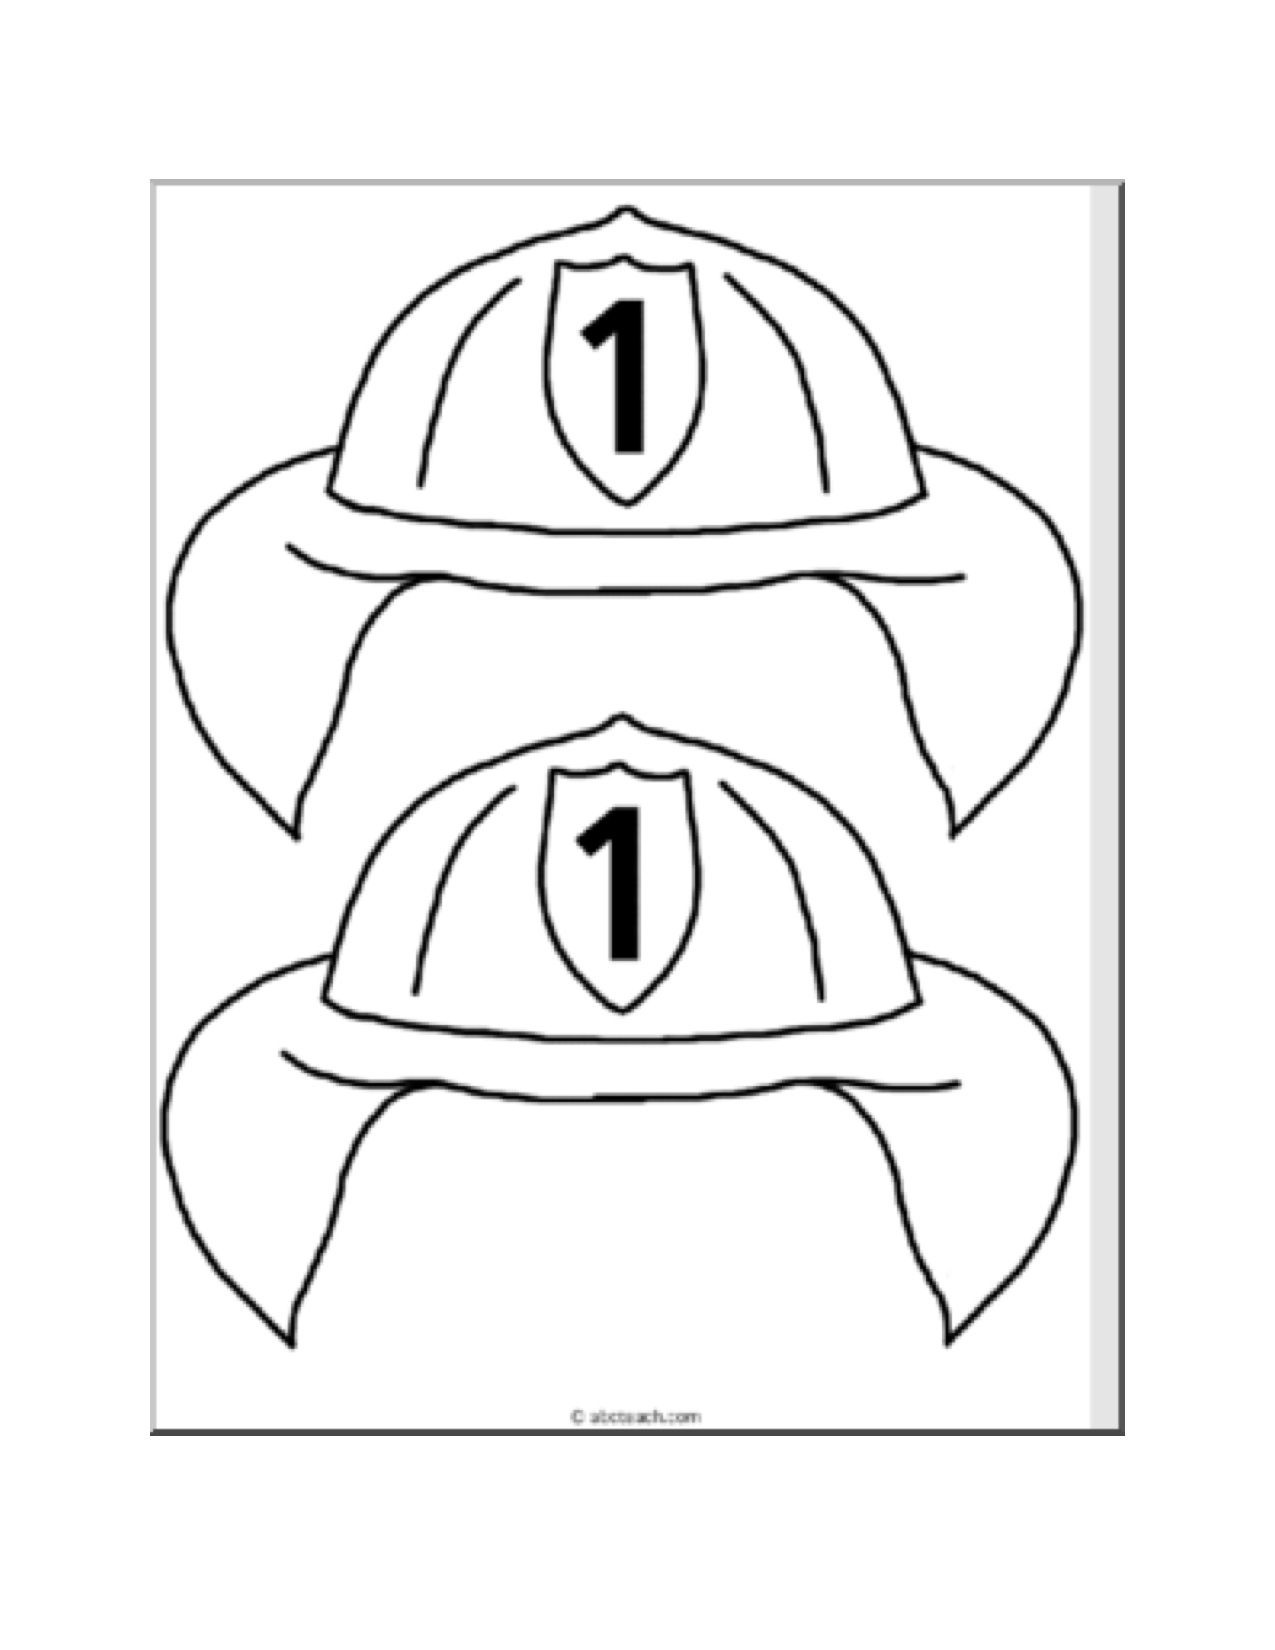 Coloring pages printable fire safety week